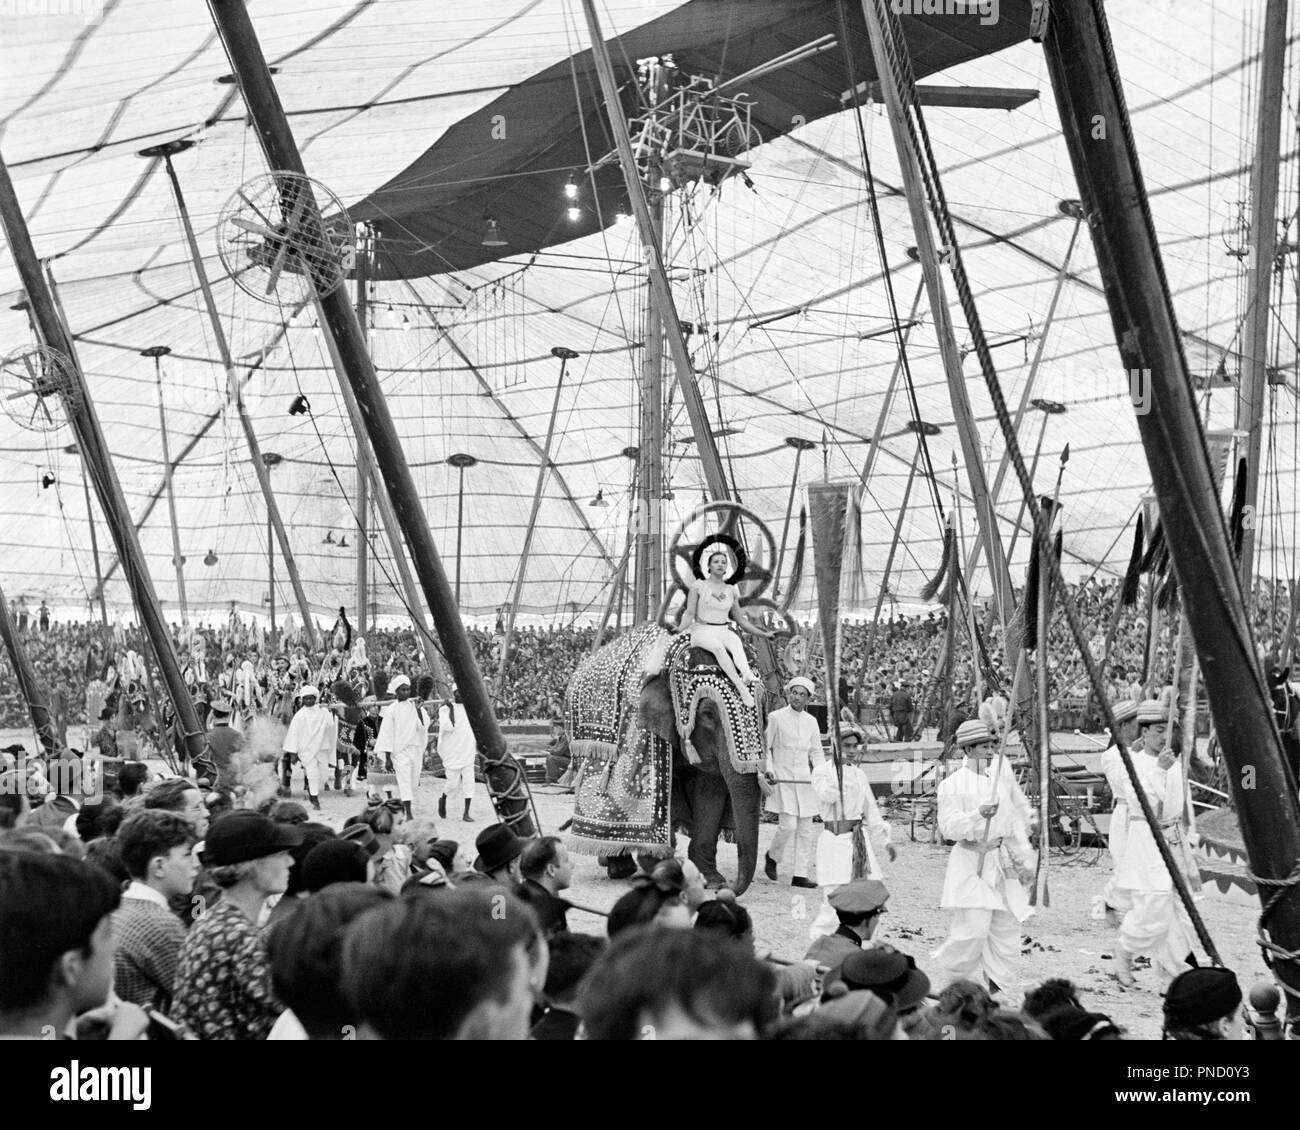 1930s 1940s 1950s INTERIOR OF BIG TOP CIRCUS TENT SHOWING AUDIENCE WATCHING PERFORMERS AND ELEPHANTS PARADE AROUND THREE RINGS - c7668 HAR001 HARS RINGS FULL-LENGTH LADIES PERSONS INSPIRATION MALES TEENAGE GIRL TEENAGE BOY ENTERTAINMENT B&W POLES PERFORMING ARTS DREAMS HAPPINESS ADVENTURE CANVAS PERFORMER STRENGTH AND ELEPHANTS EXCITEMENT LOW ANGLE RECREATION OF ENTERTAINER OCCUPATIONS ROPES IMAGINATION STYLISH ENTERTAINERS PERFORMERS RELAXATION THREE RING BIG TOP BLACK AND WHITE HAR001 OLD FASHIONED - Stock Image